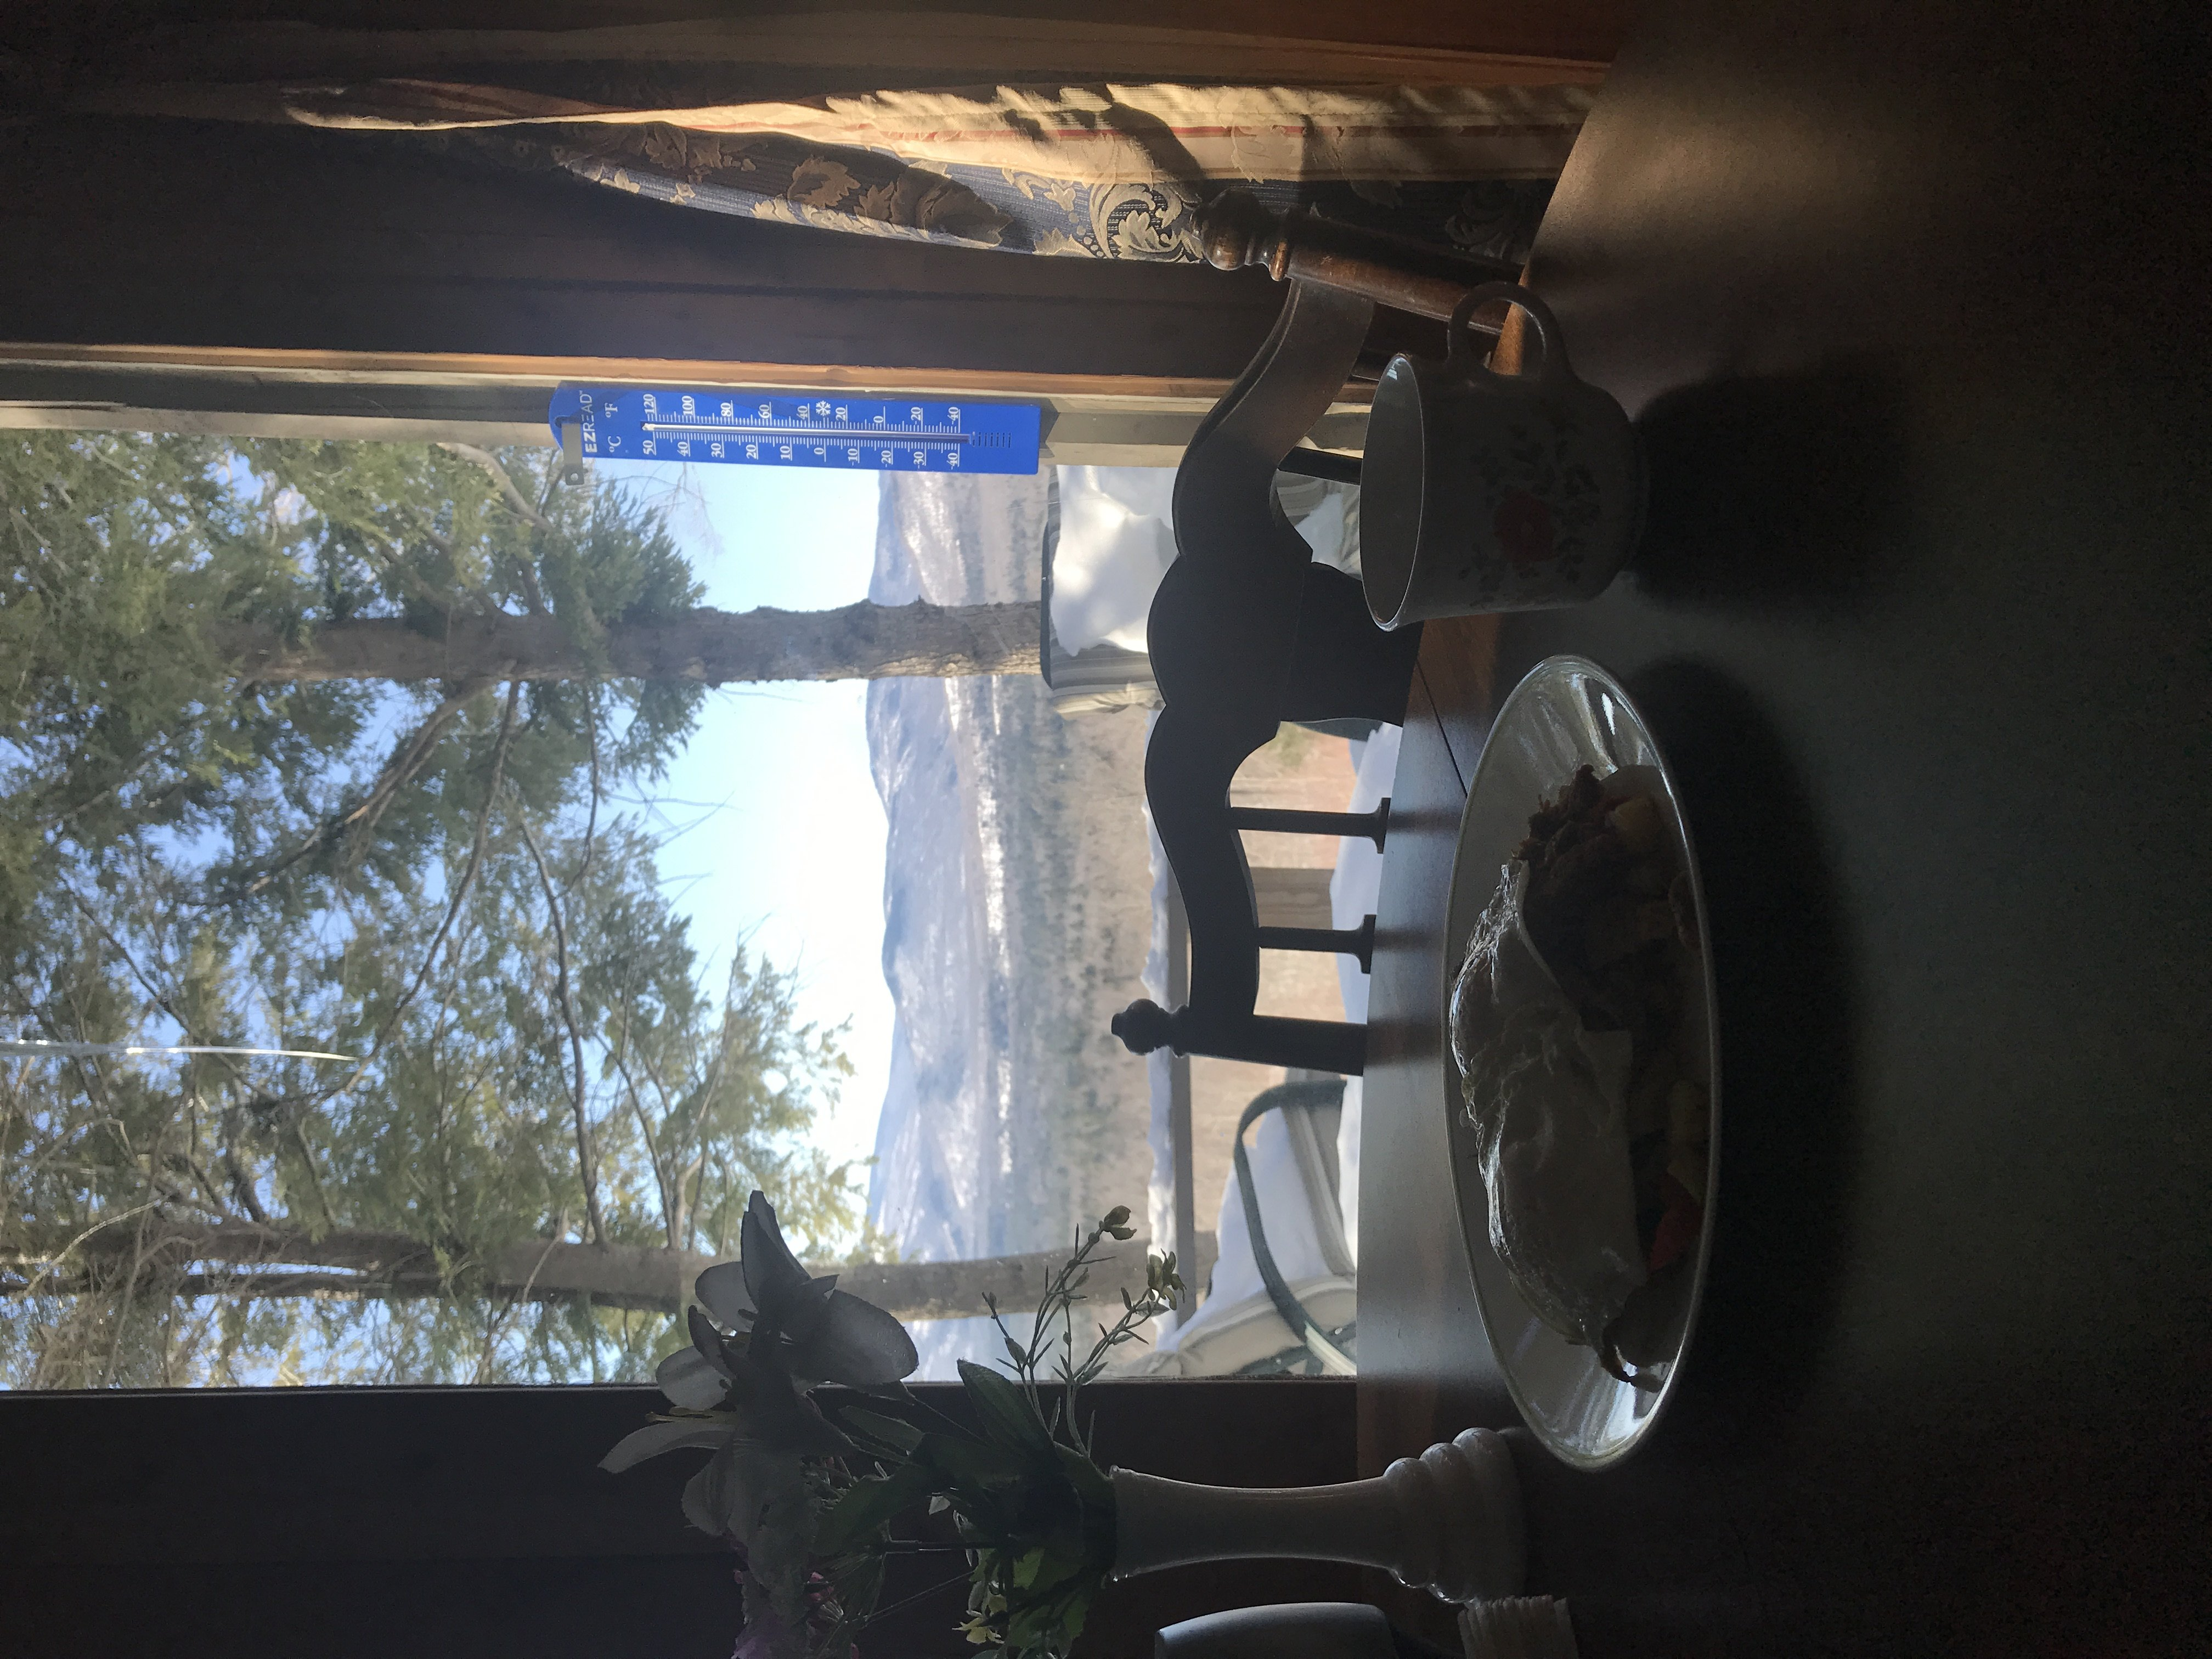 Breakfast on a table that looks out a window to a view of the mountains.